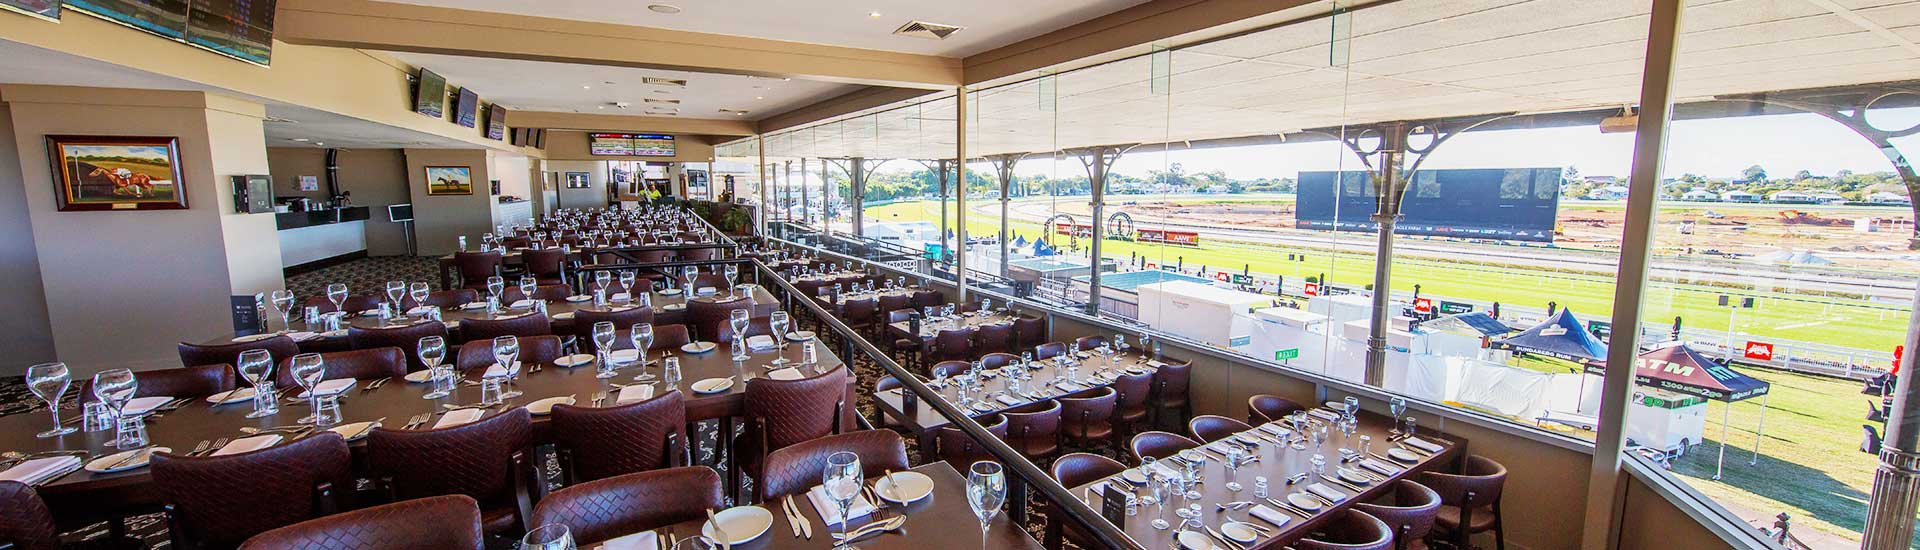 Moreton Dining Room is the perfect location for your function, encased in floor-to-ceiling glass this newly refurbished, exclusive dining room affords spectacular views of Eagle Farm Racecourse and the winning post